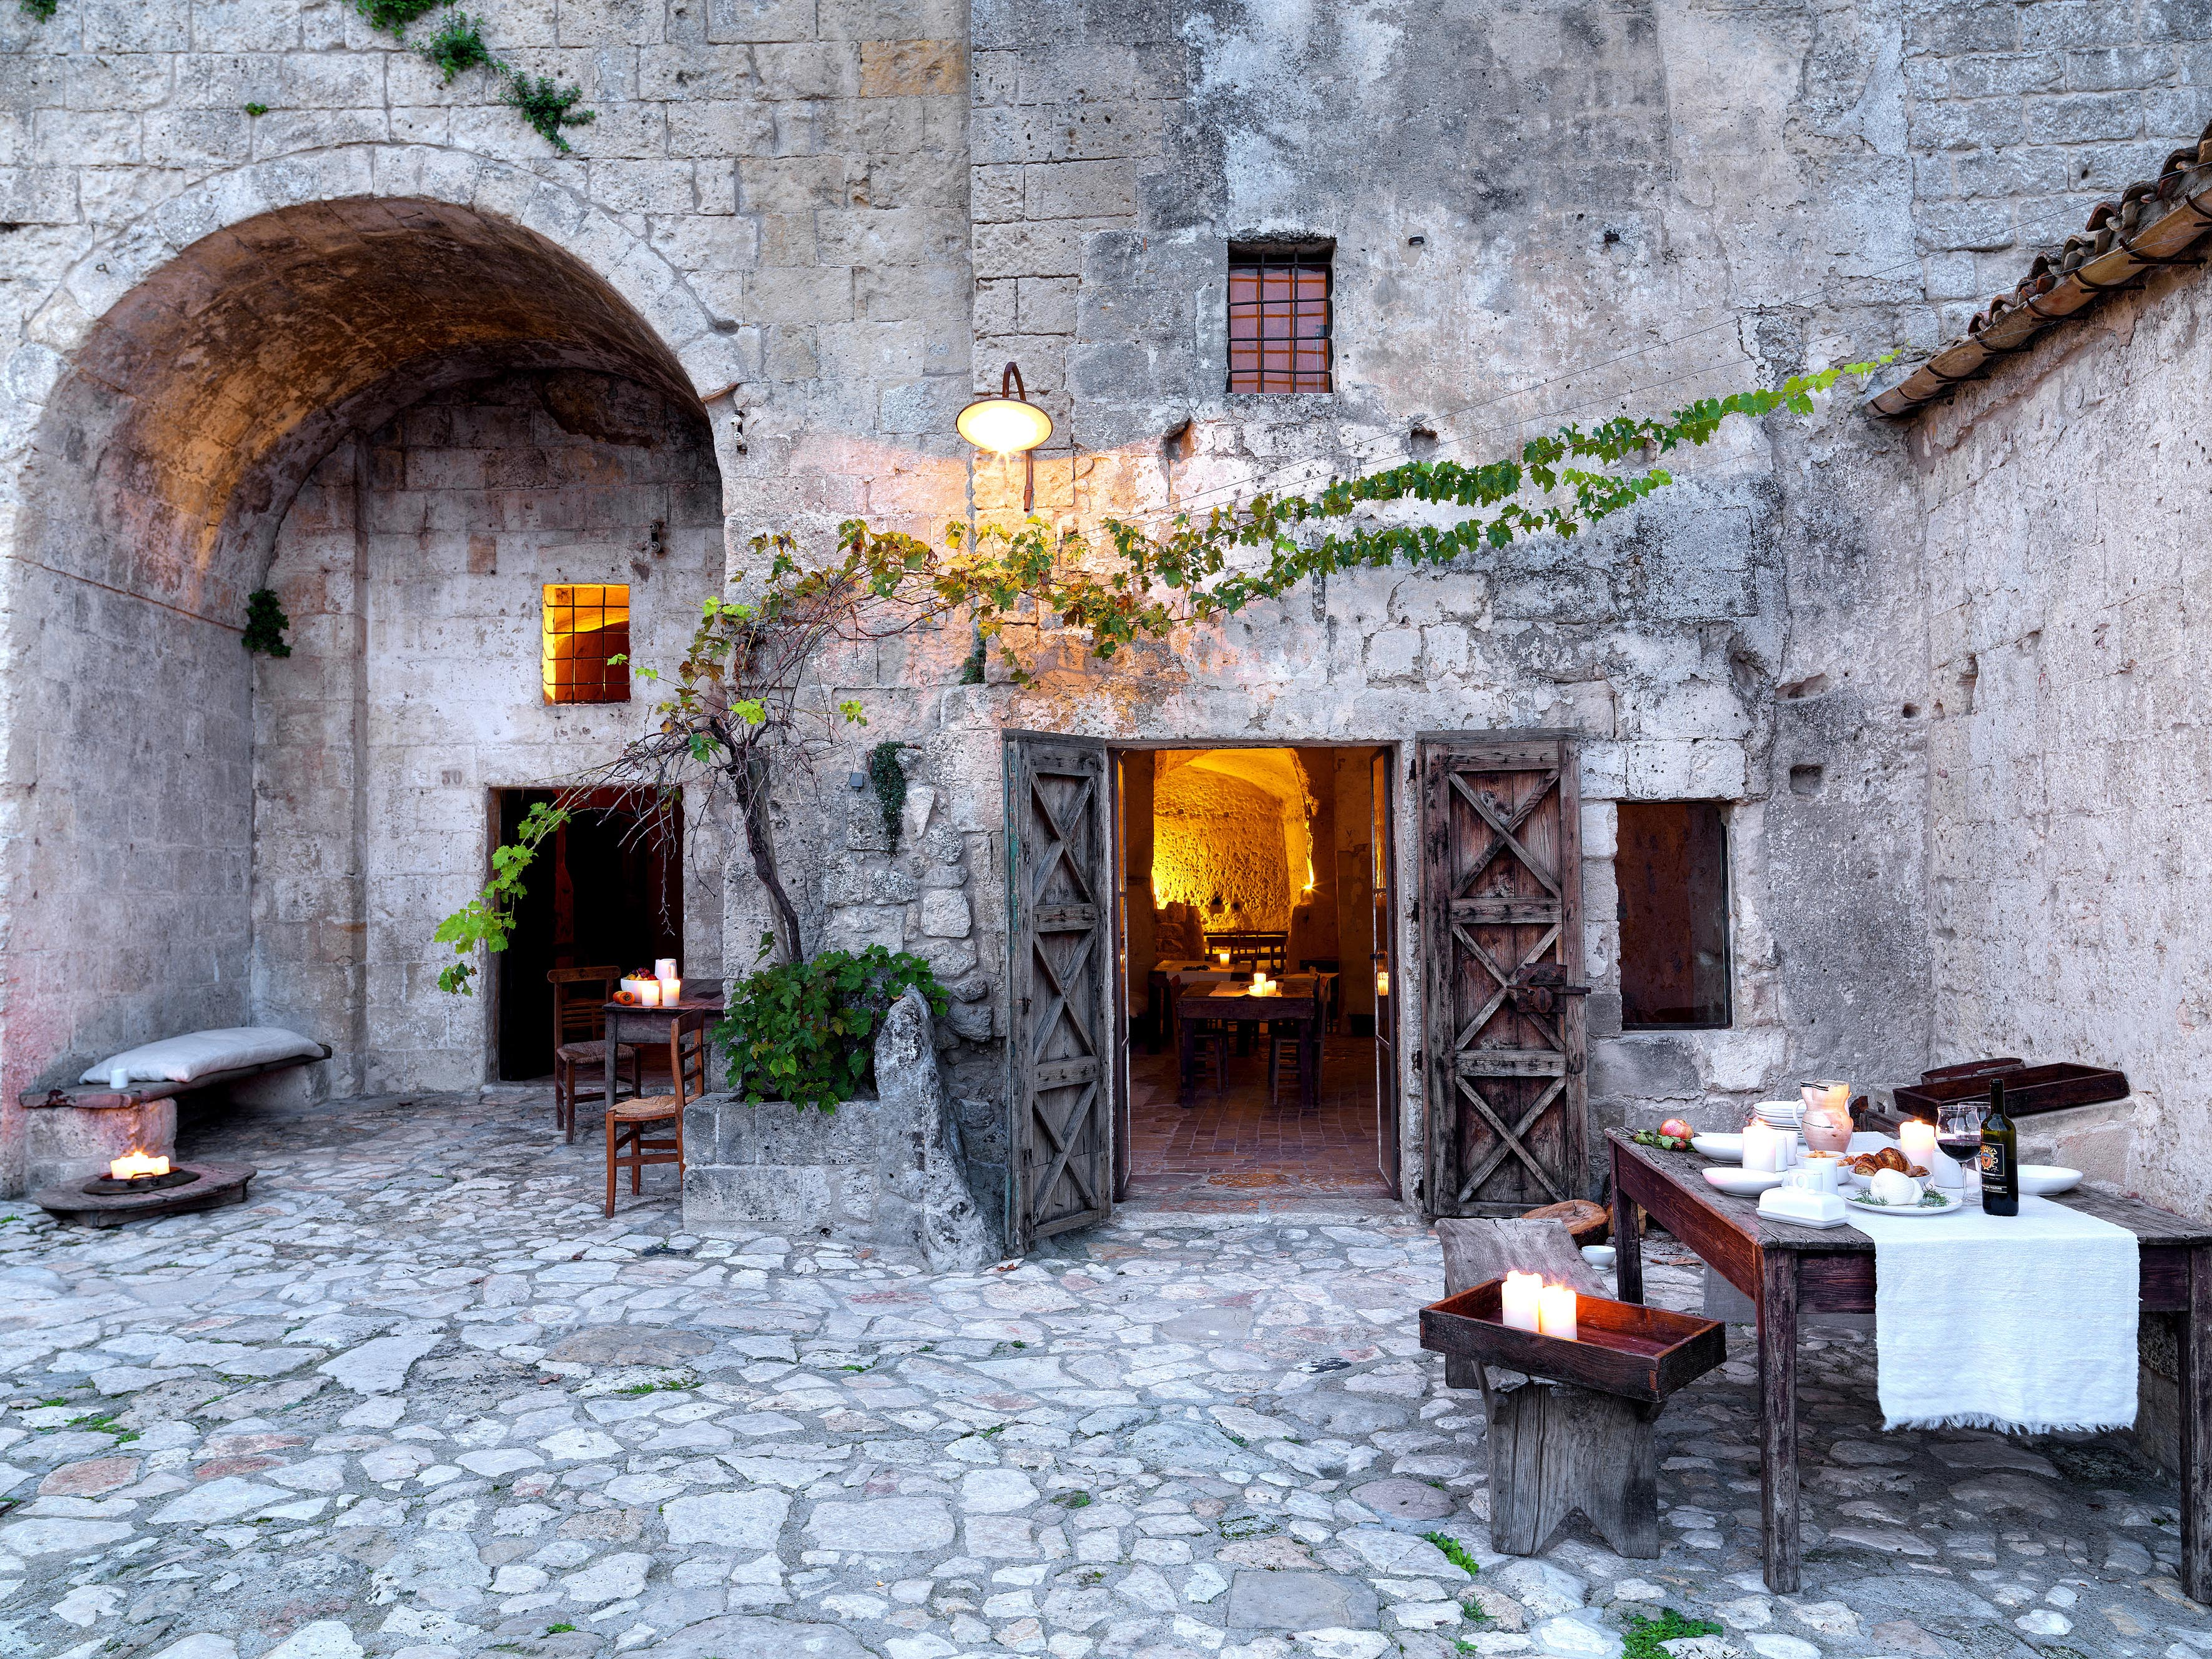 Italy's Scattered Hotels, the Alberghi Diffusi